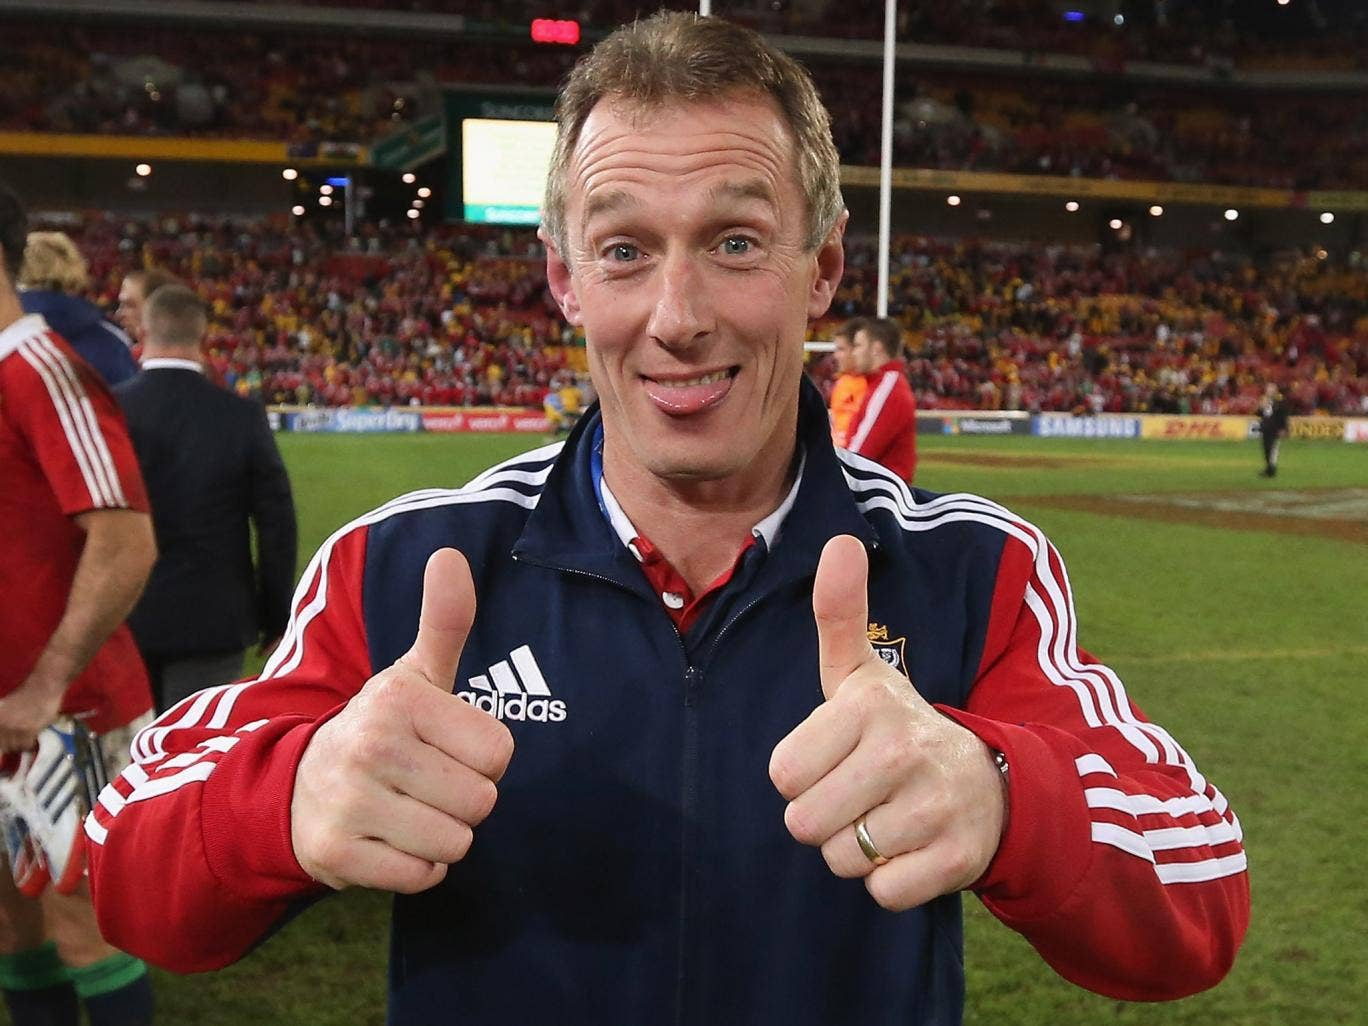 Rob Howley, the Lions attack coach, celebrating after their victory during the First Test match against the Australian Wallabies